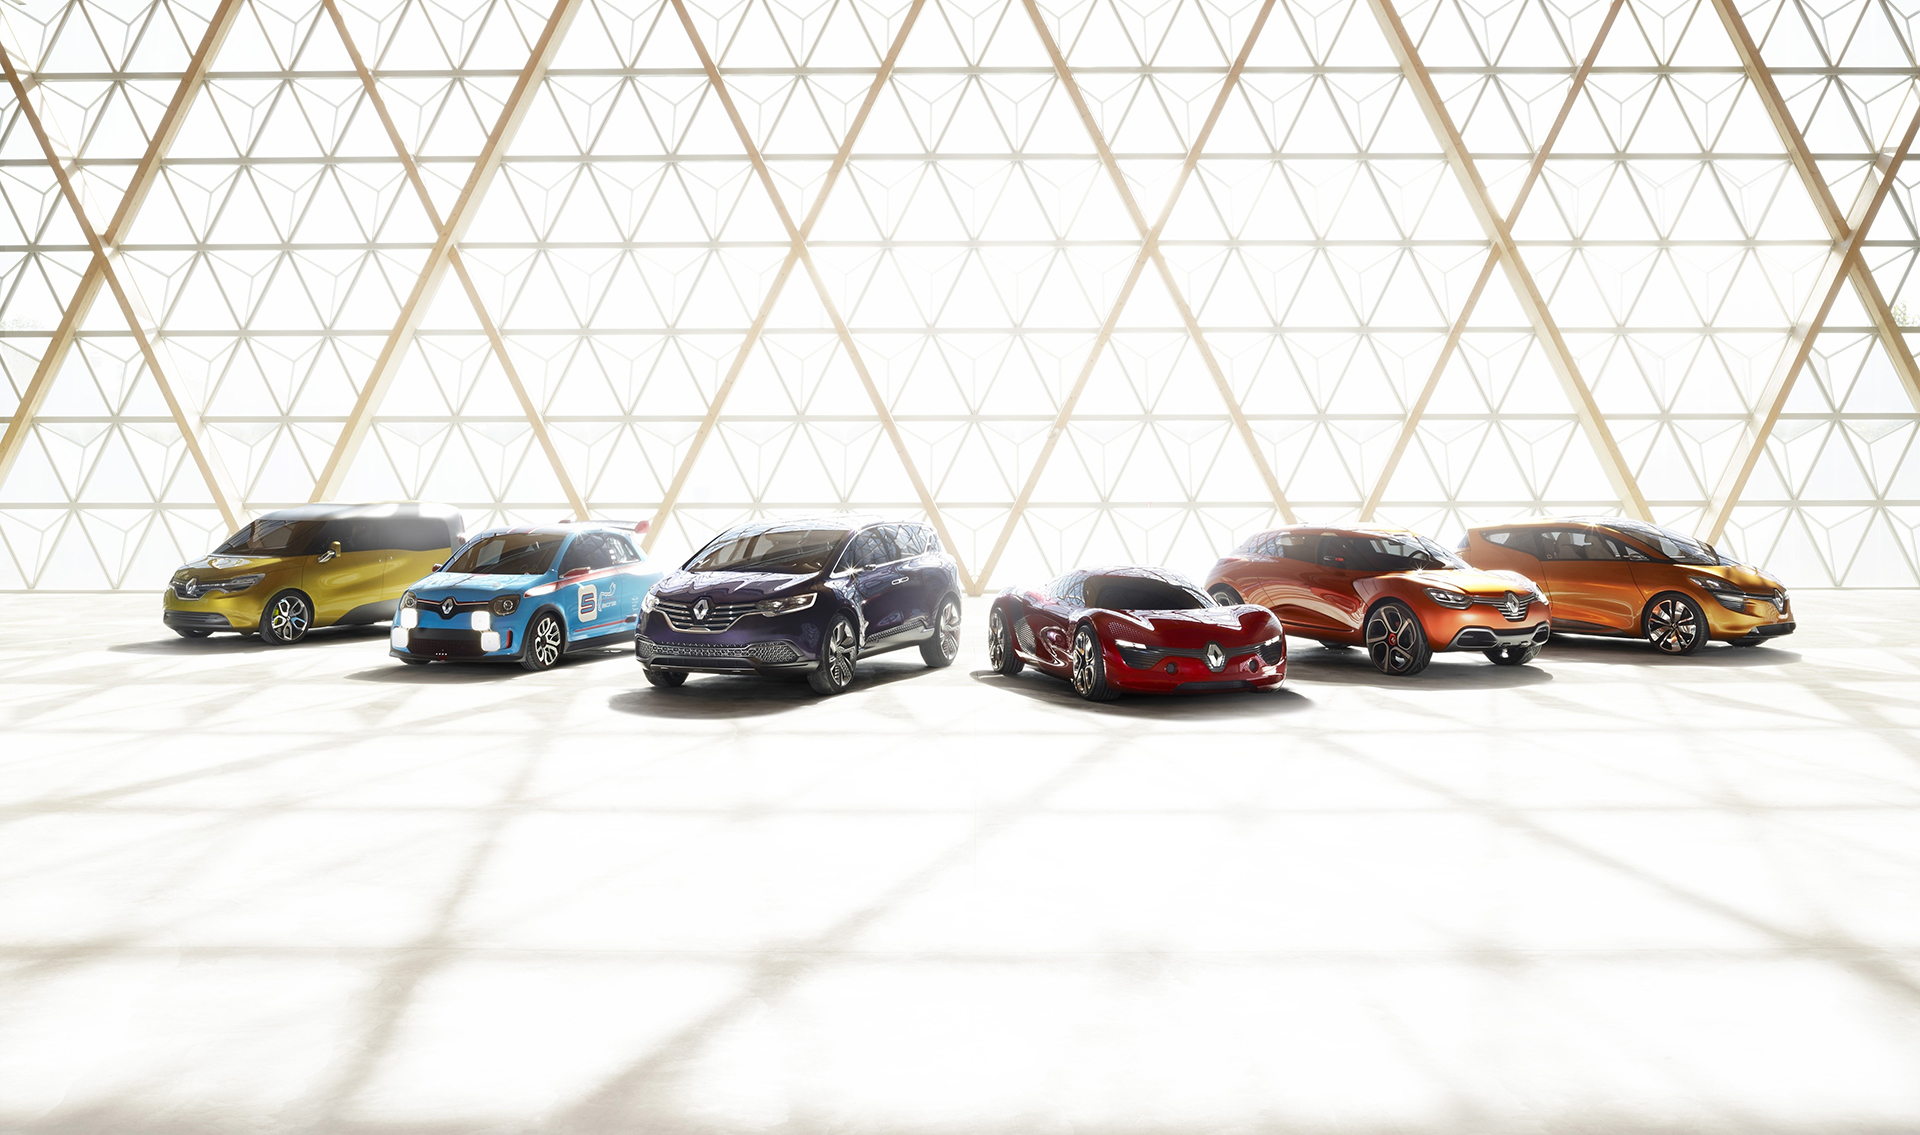 Renault Concept-cars - 2013 - Dezir - Captur - RSpace - Frendzy - Twin Run - Initiale Paris